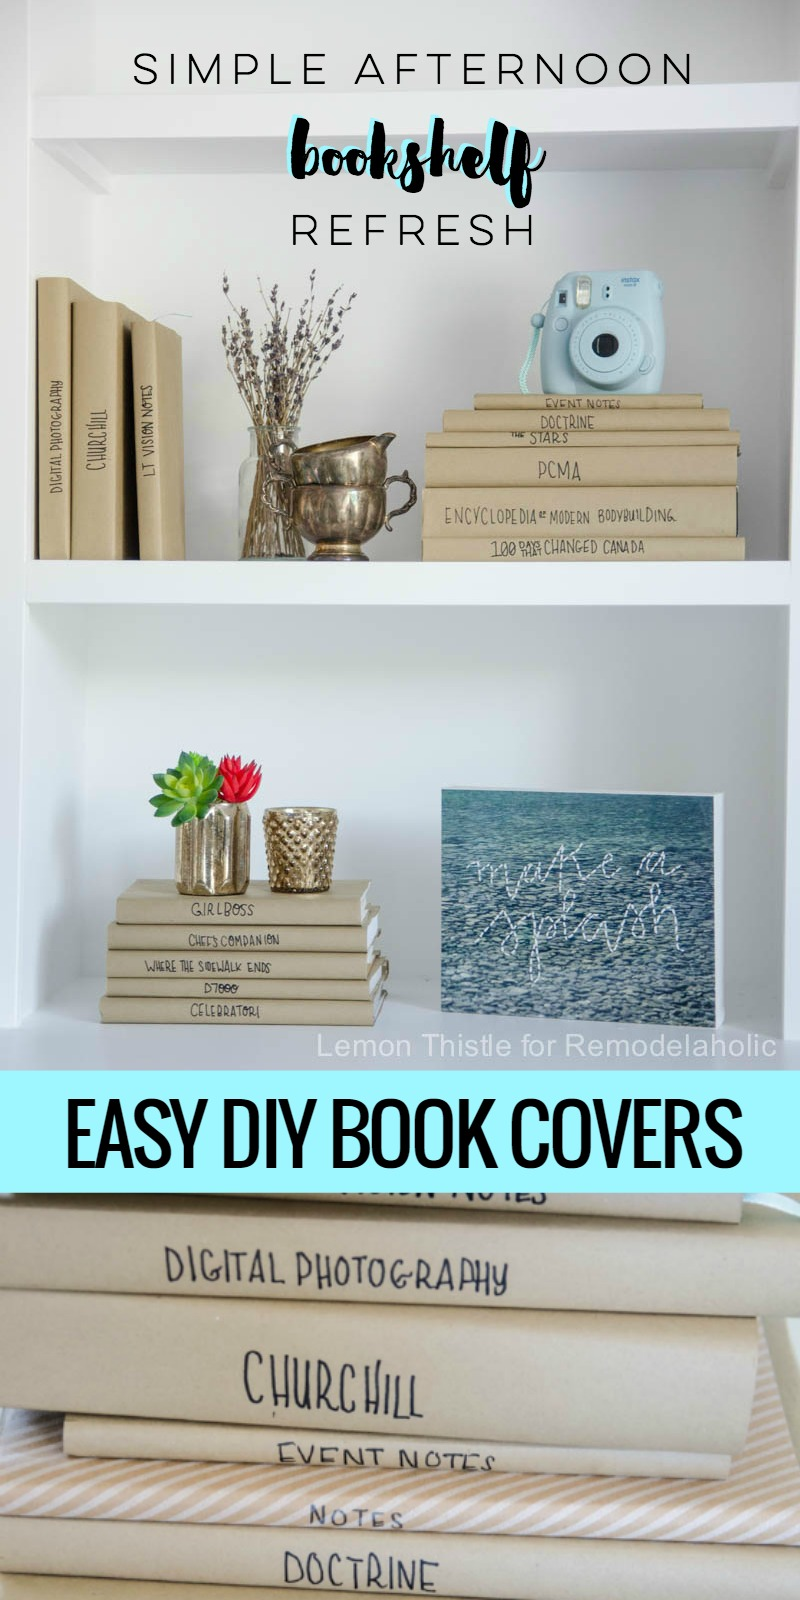 Paper Book Cover Diy : Remodelaholic afternoon bookshelf refresh with diy paper